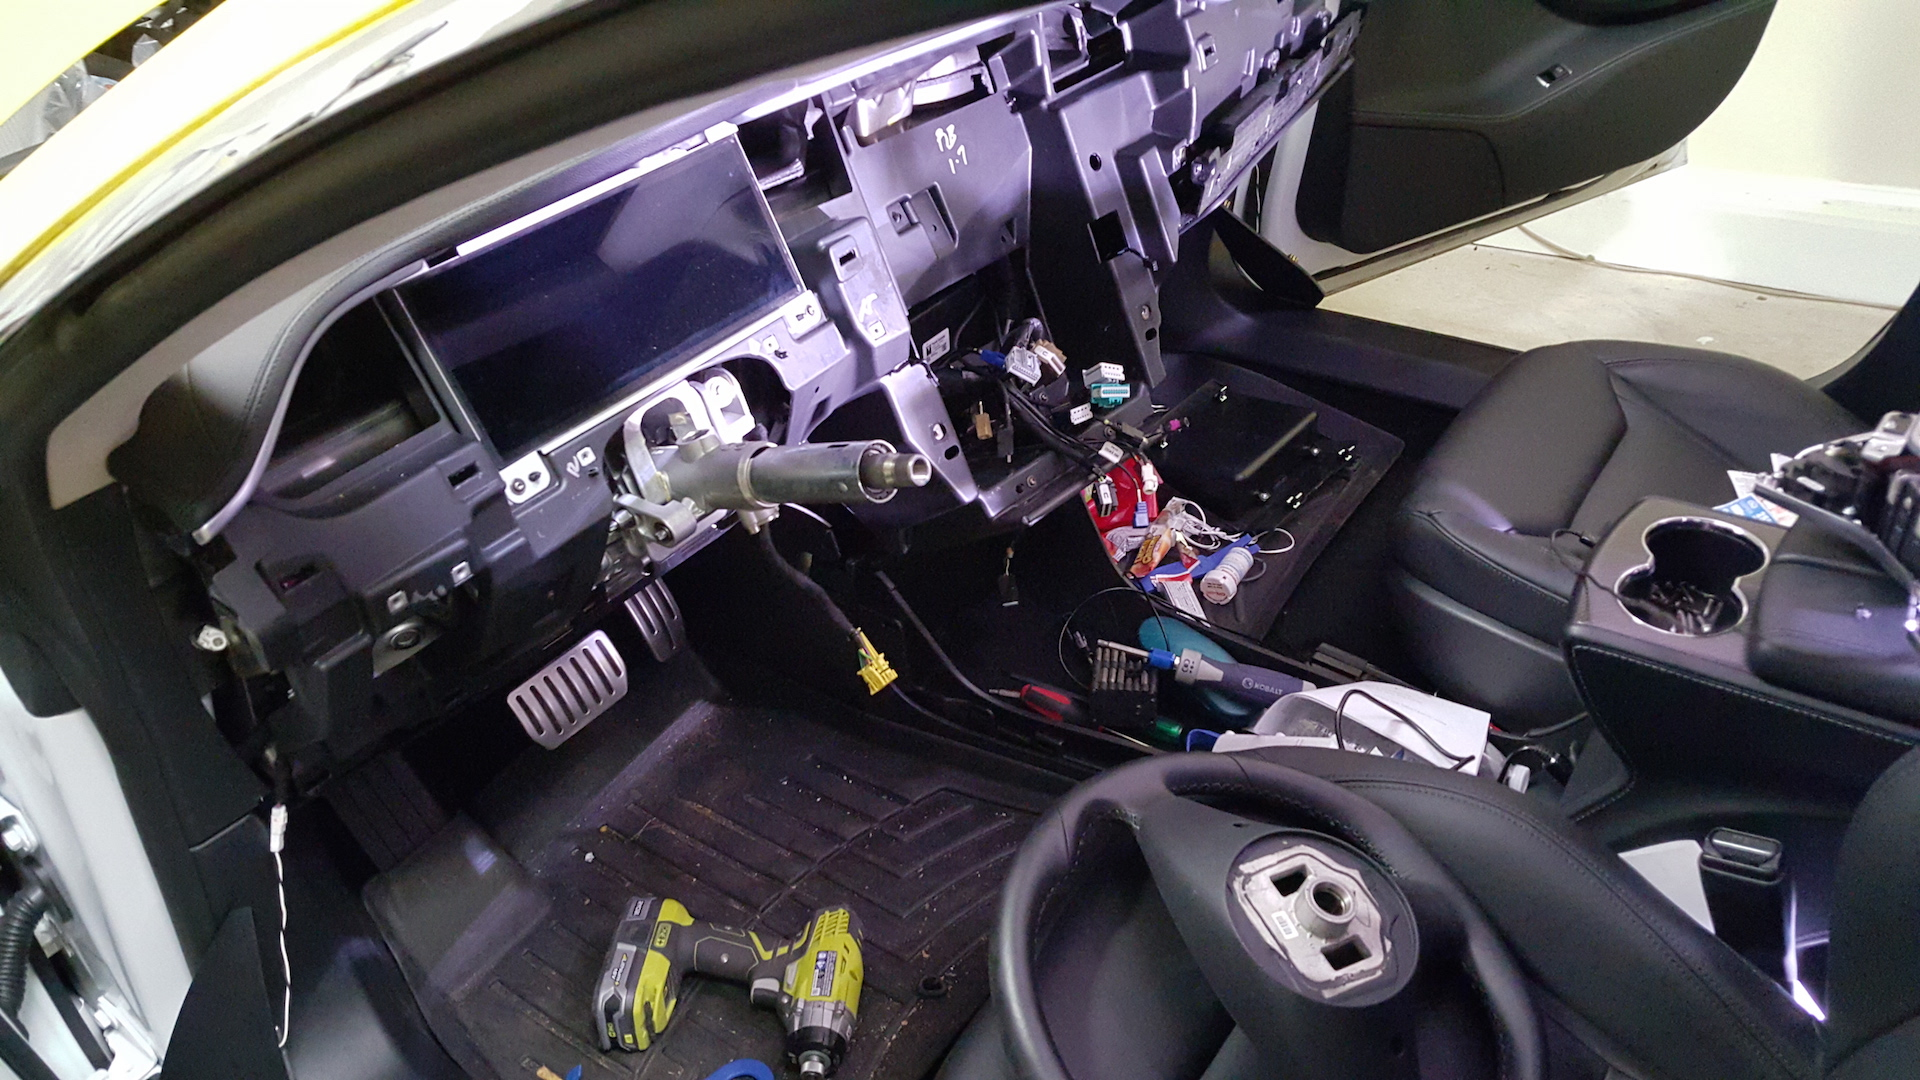 Model S interior being disassembled